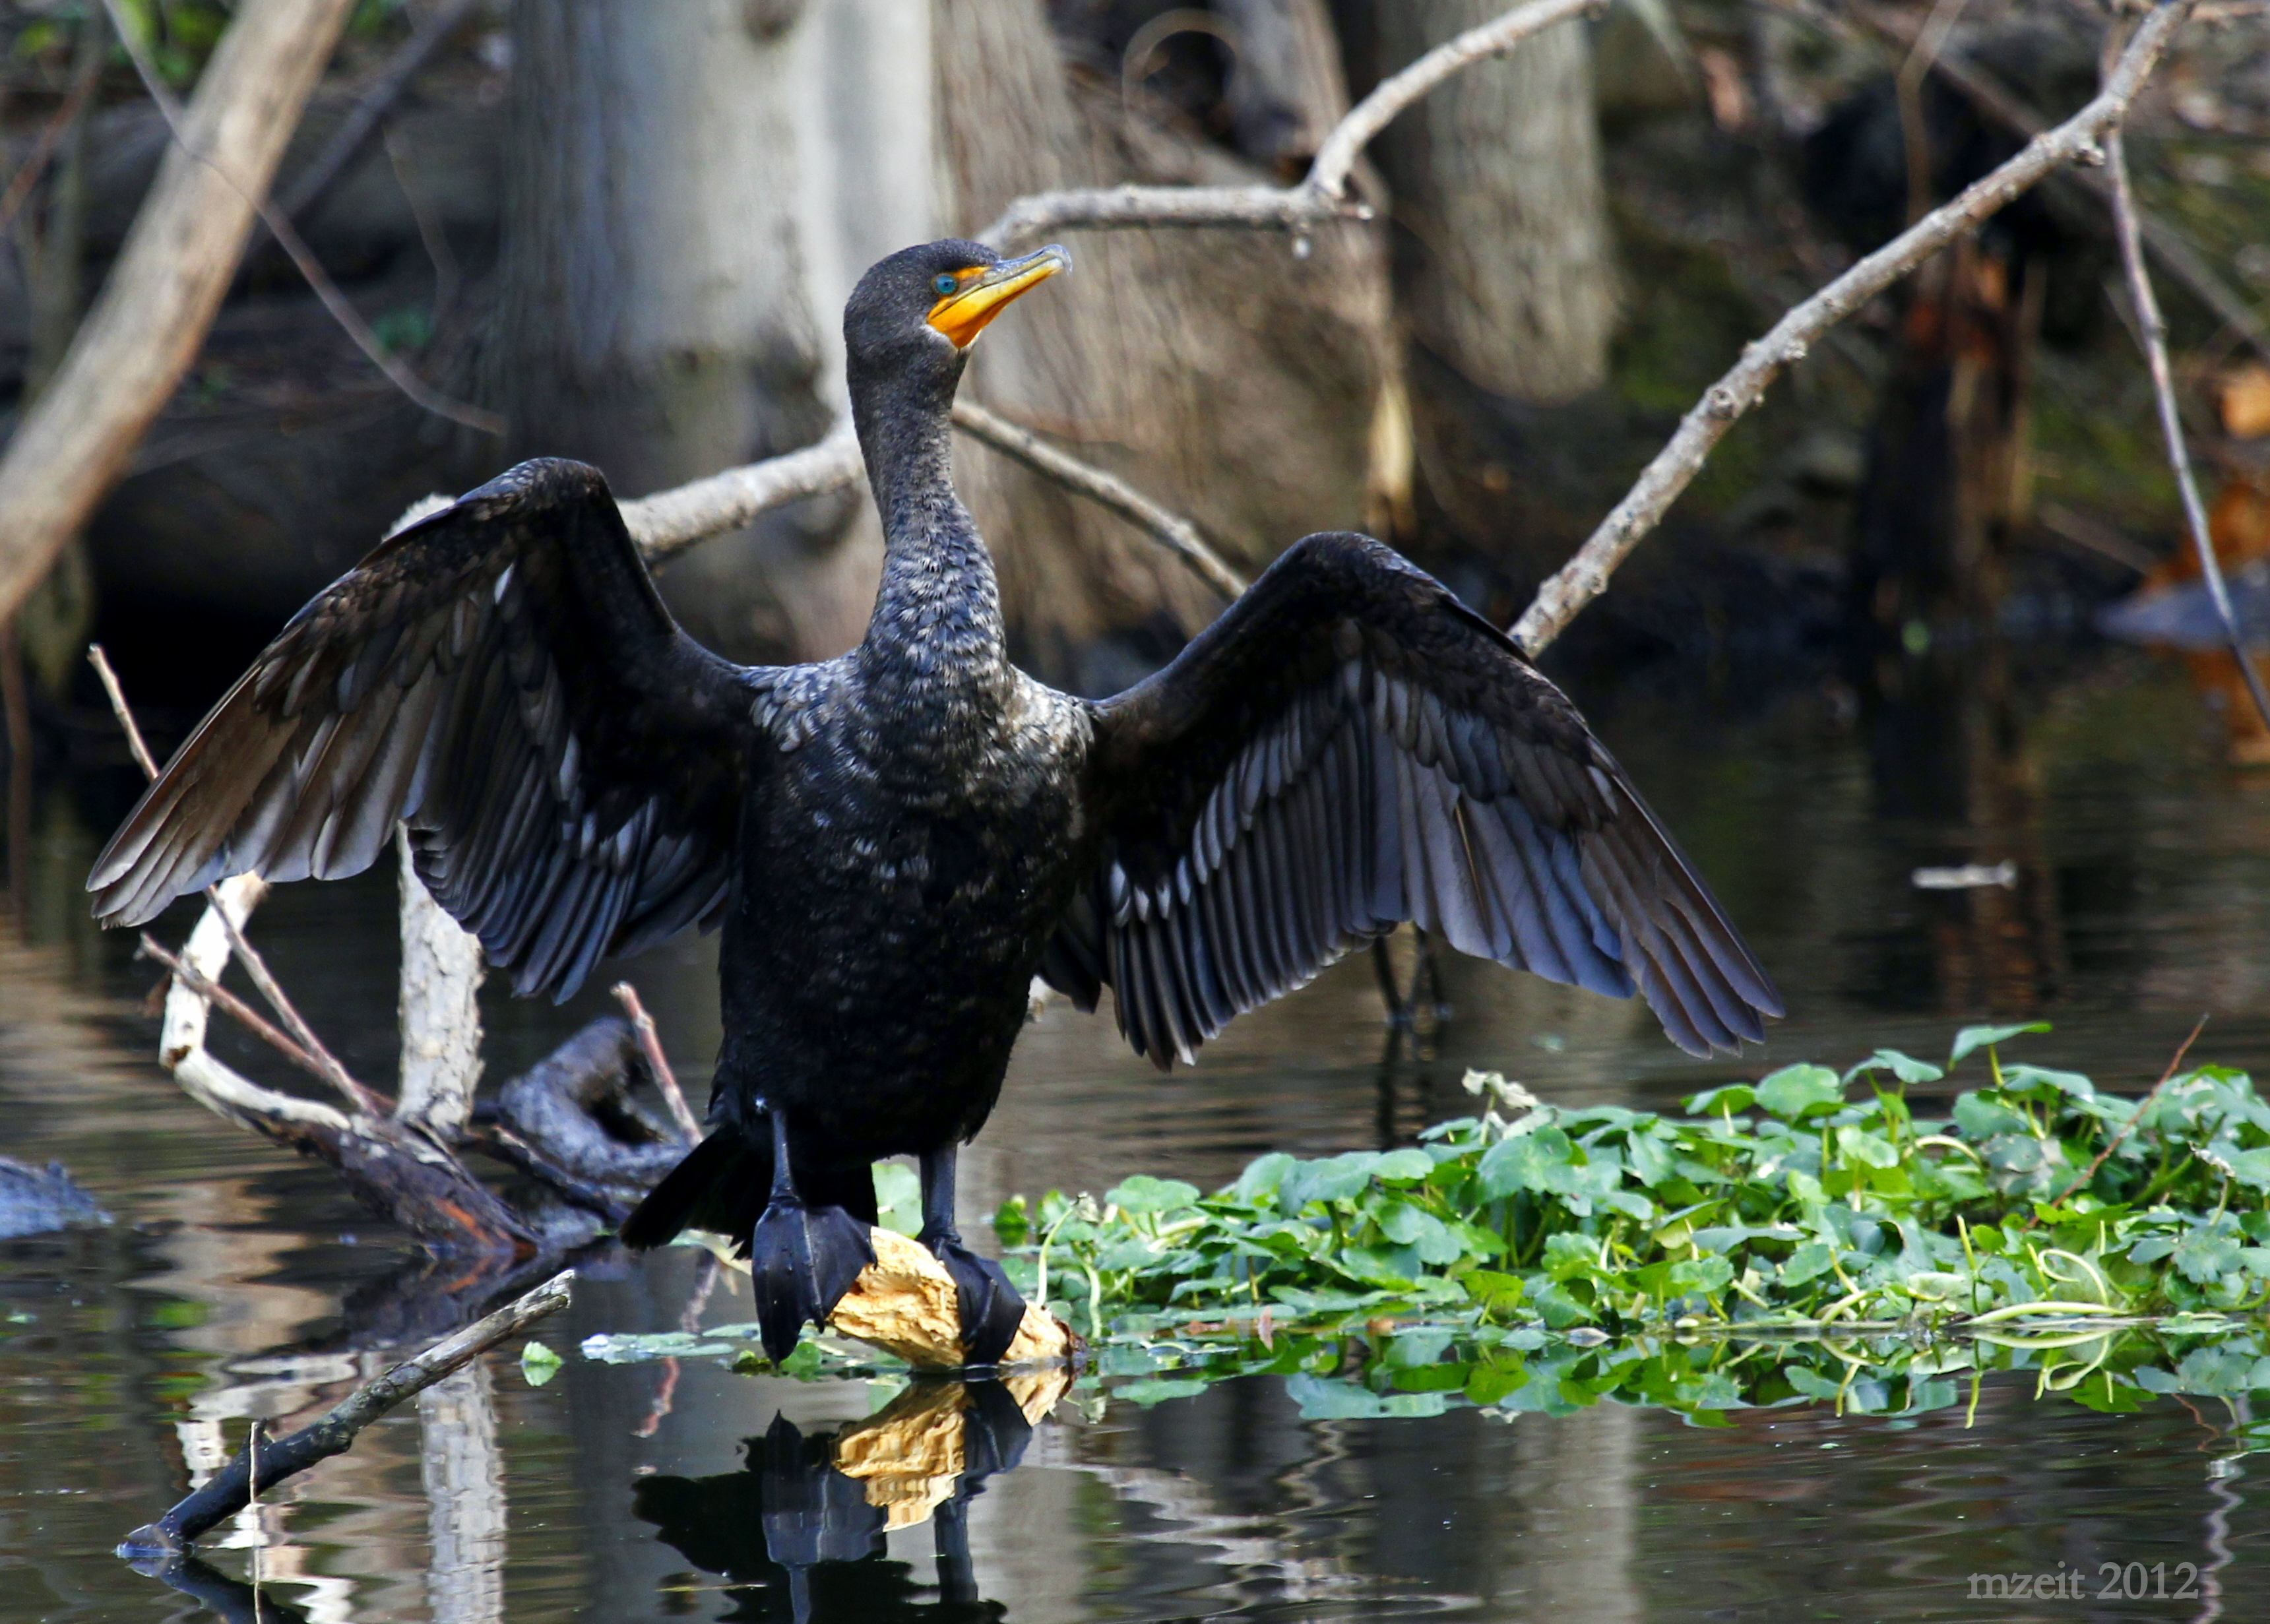 This Double-crested Cormorant was extremely accommodating. Celery Farm 11-18-12.